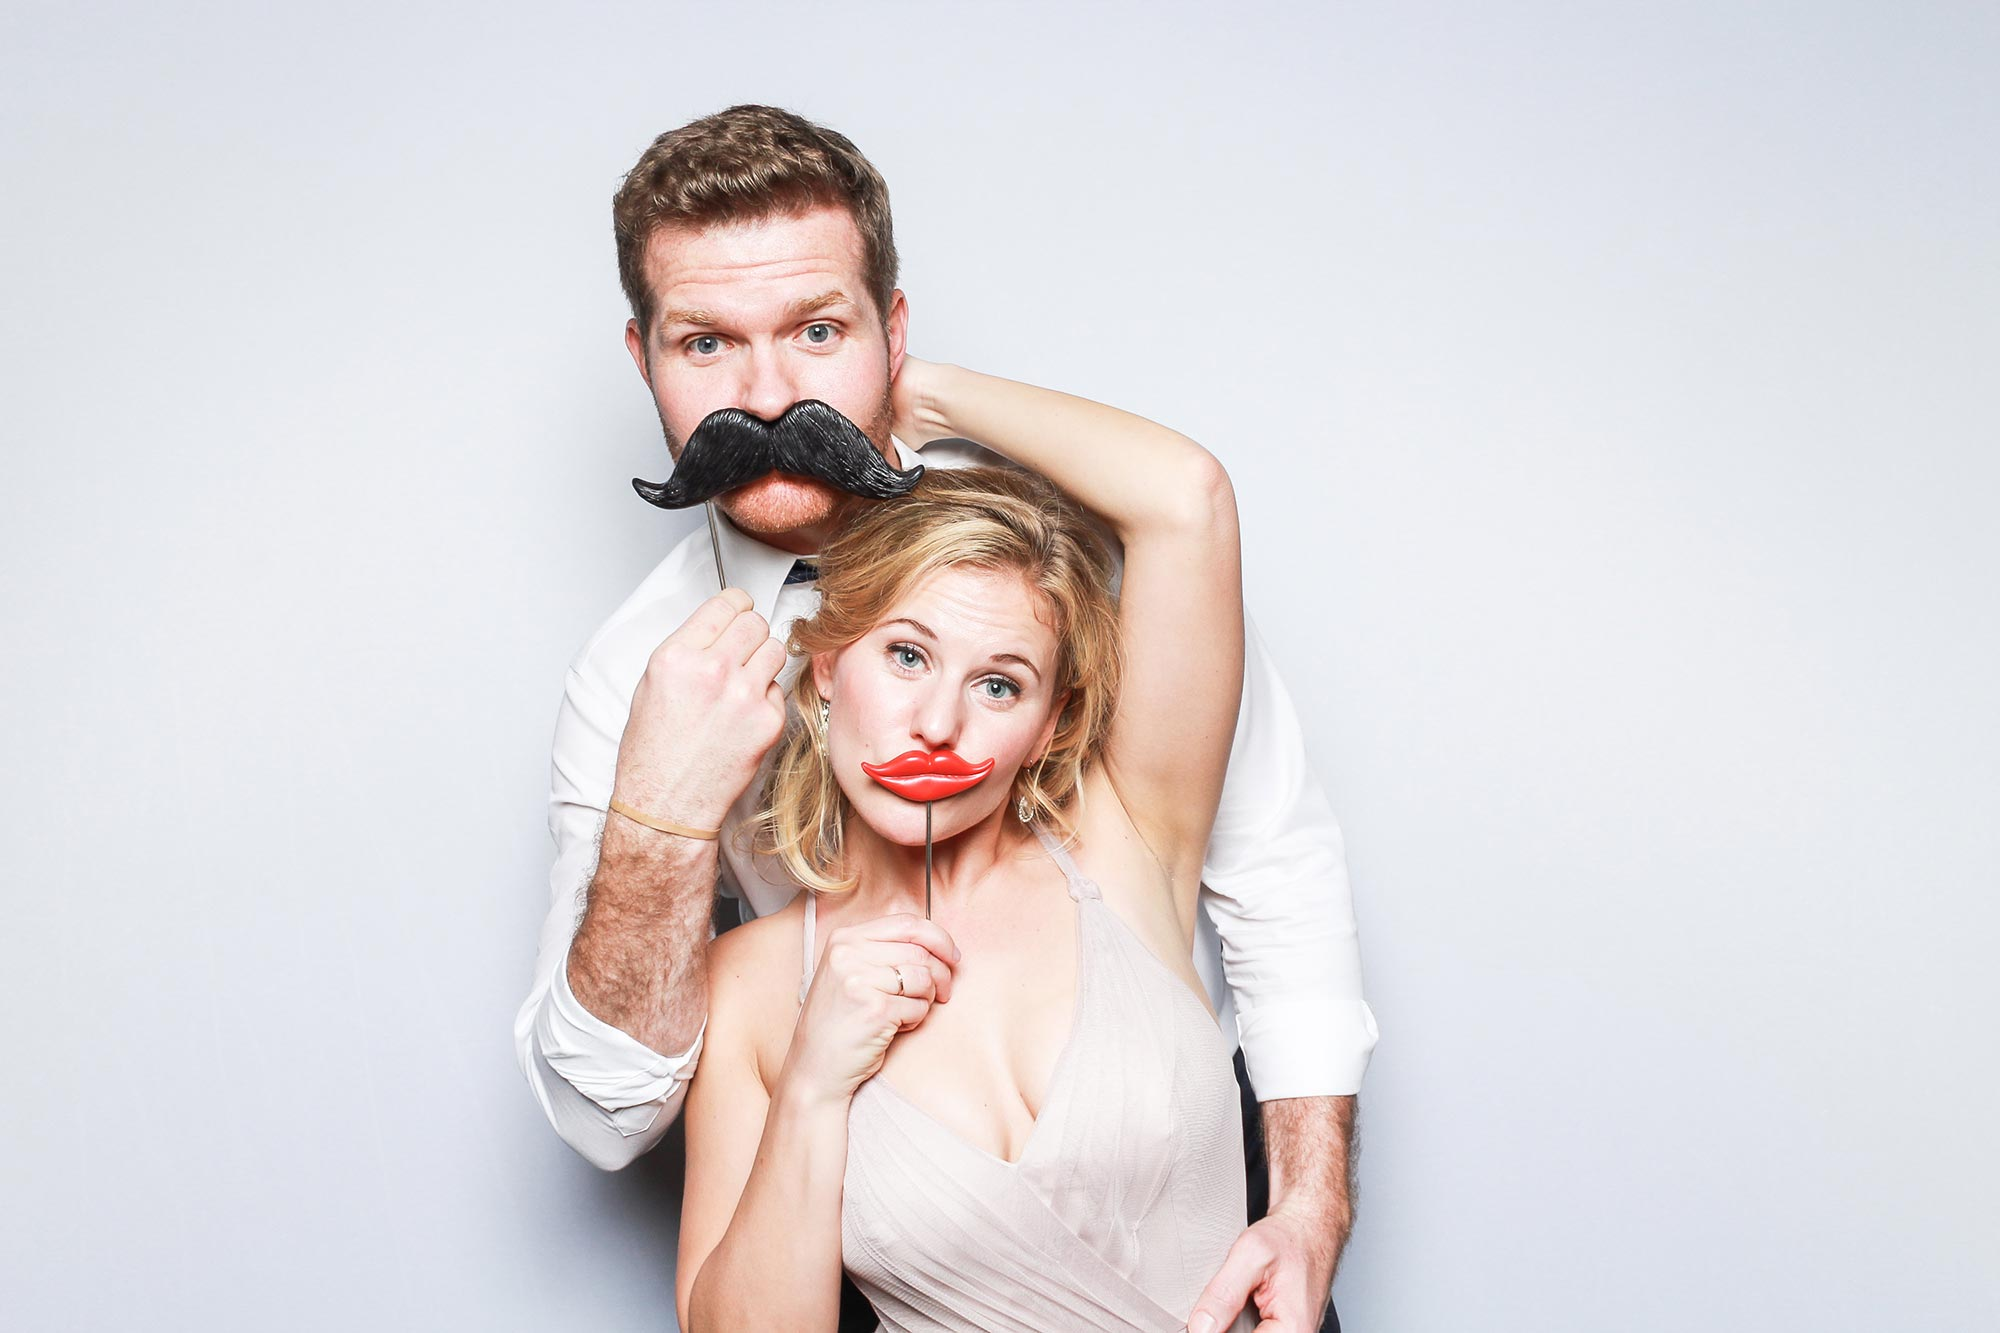 Fake mustache photo booth pose